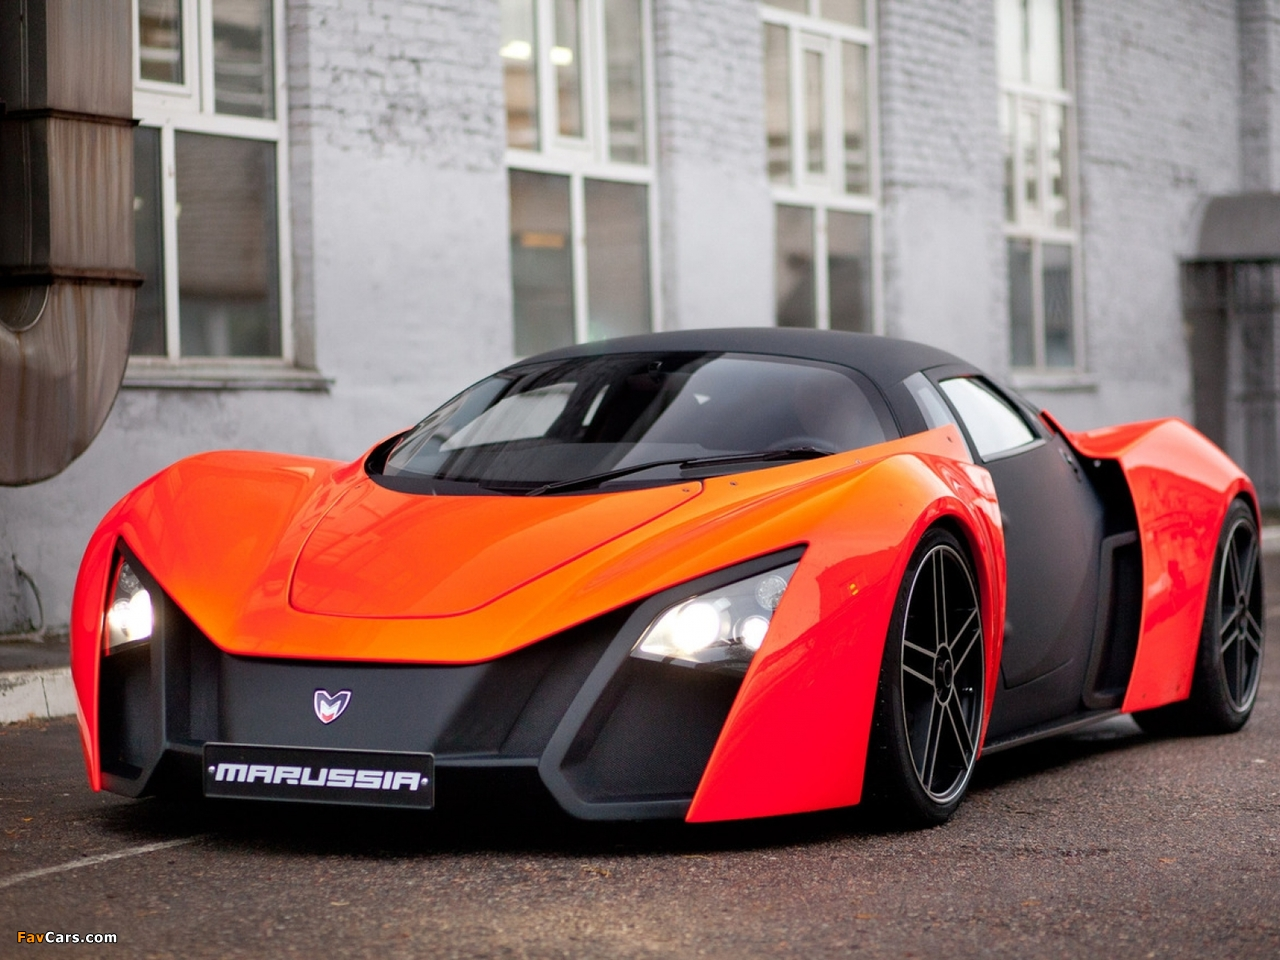 Marussia B2 (4114-000010-01) 2009–14 images (1280 x 960)